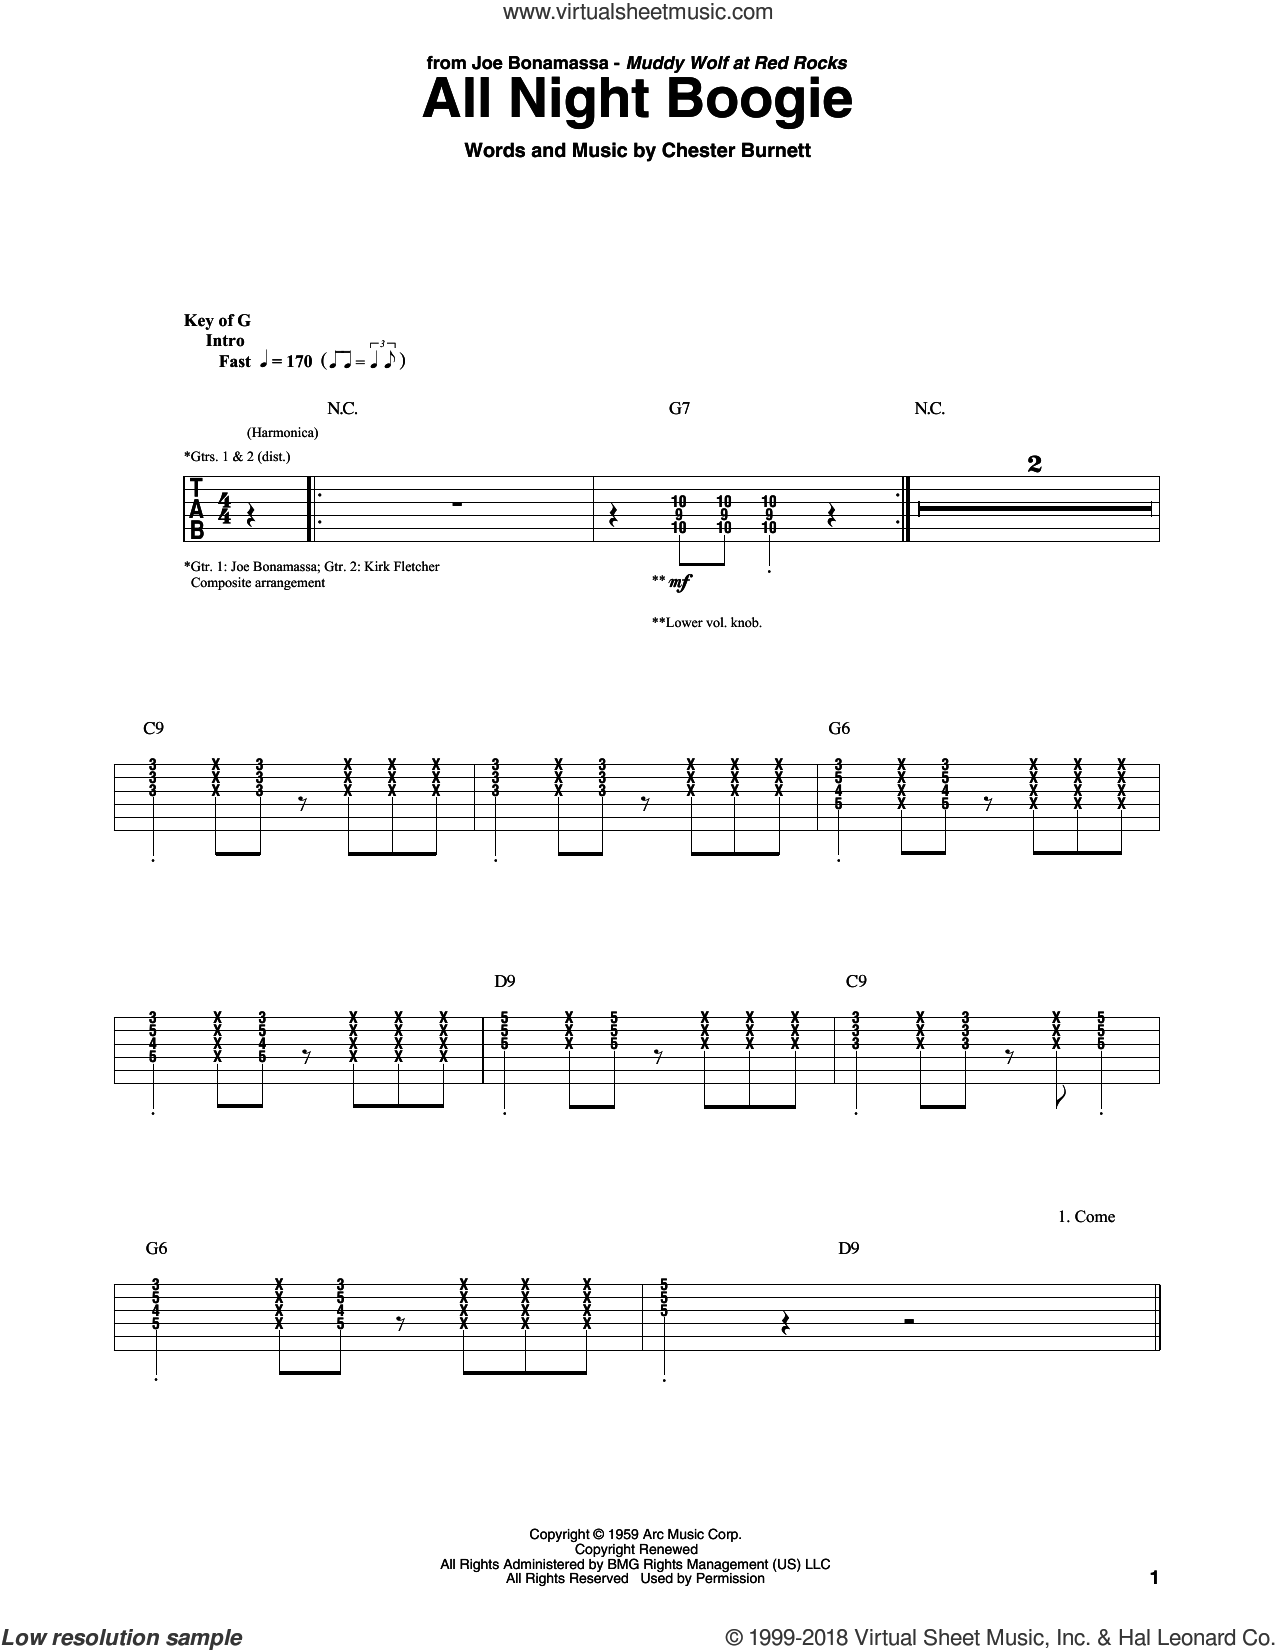 All Night Boogie sheet music for guitar (rhythm tablature) by Joe Bonamassa and Chester Burnett, intermediate skill level